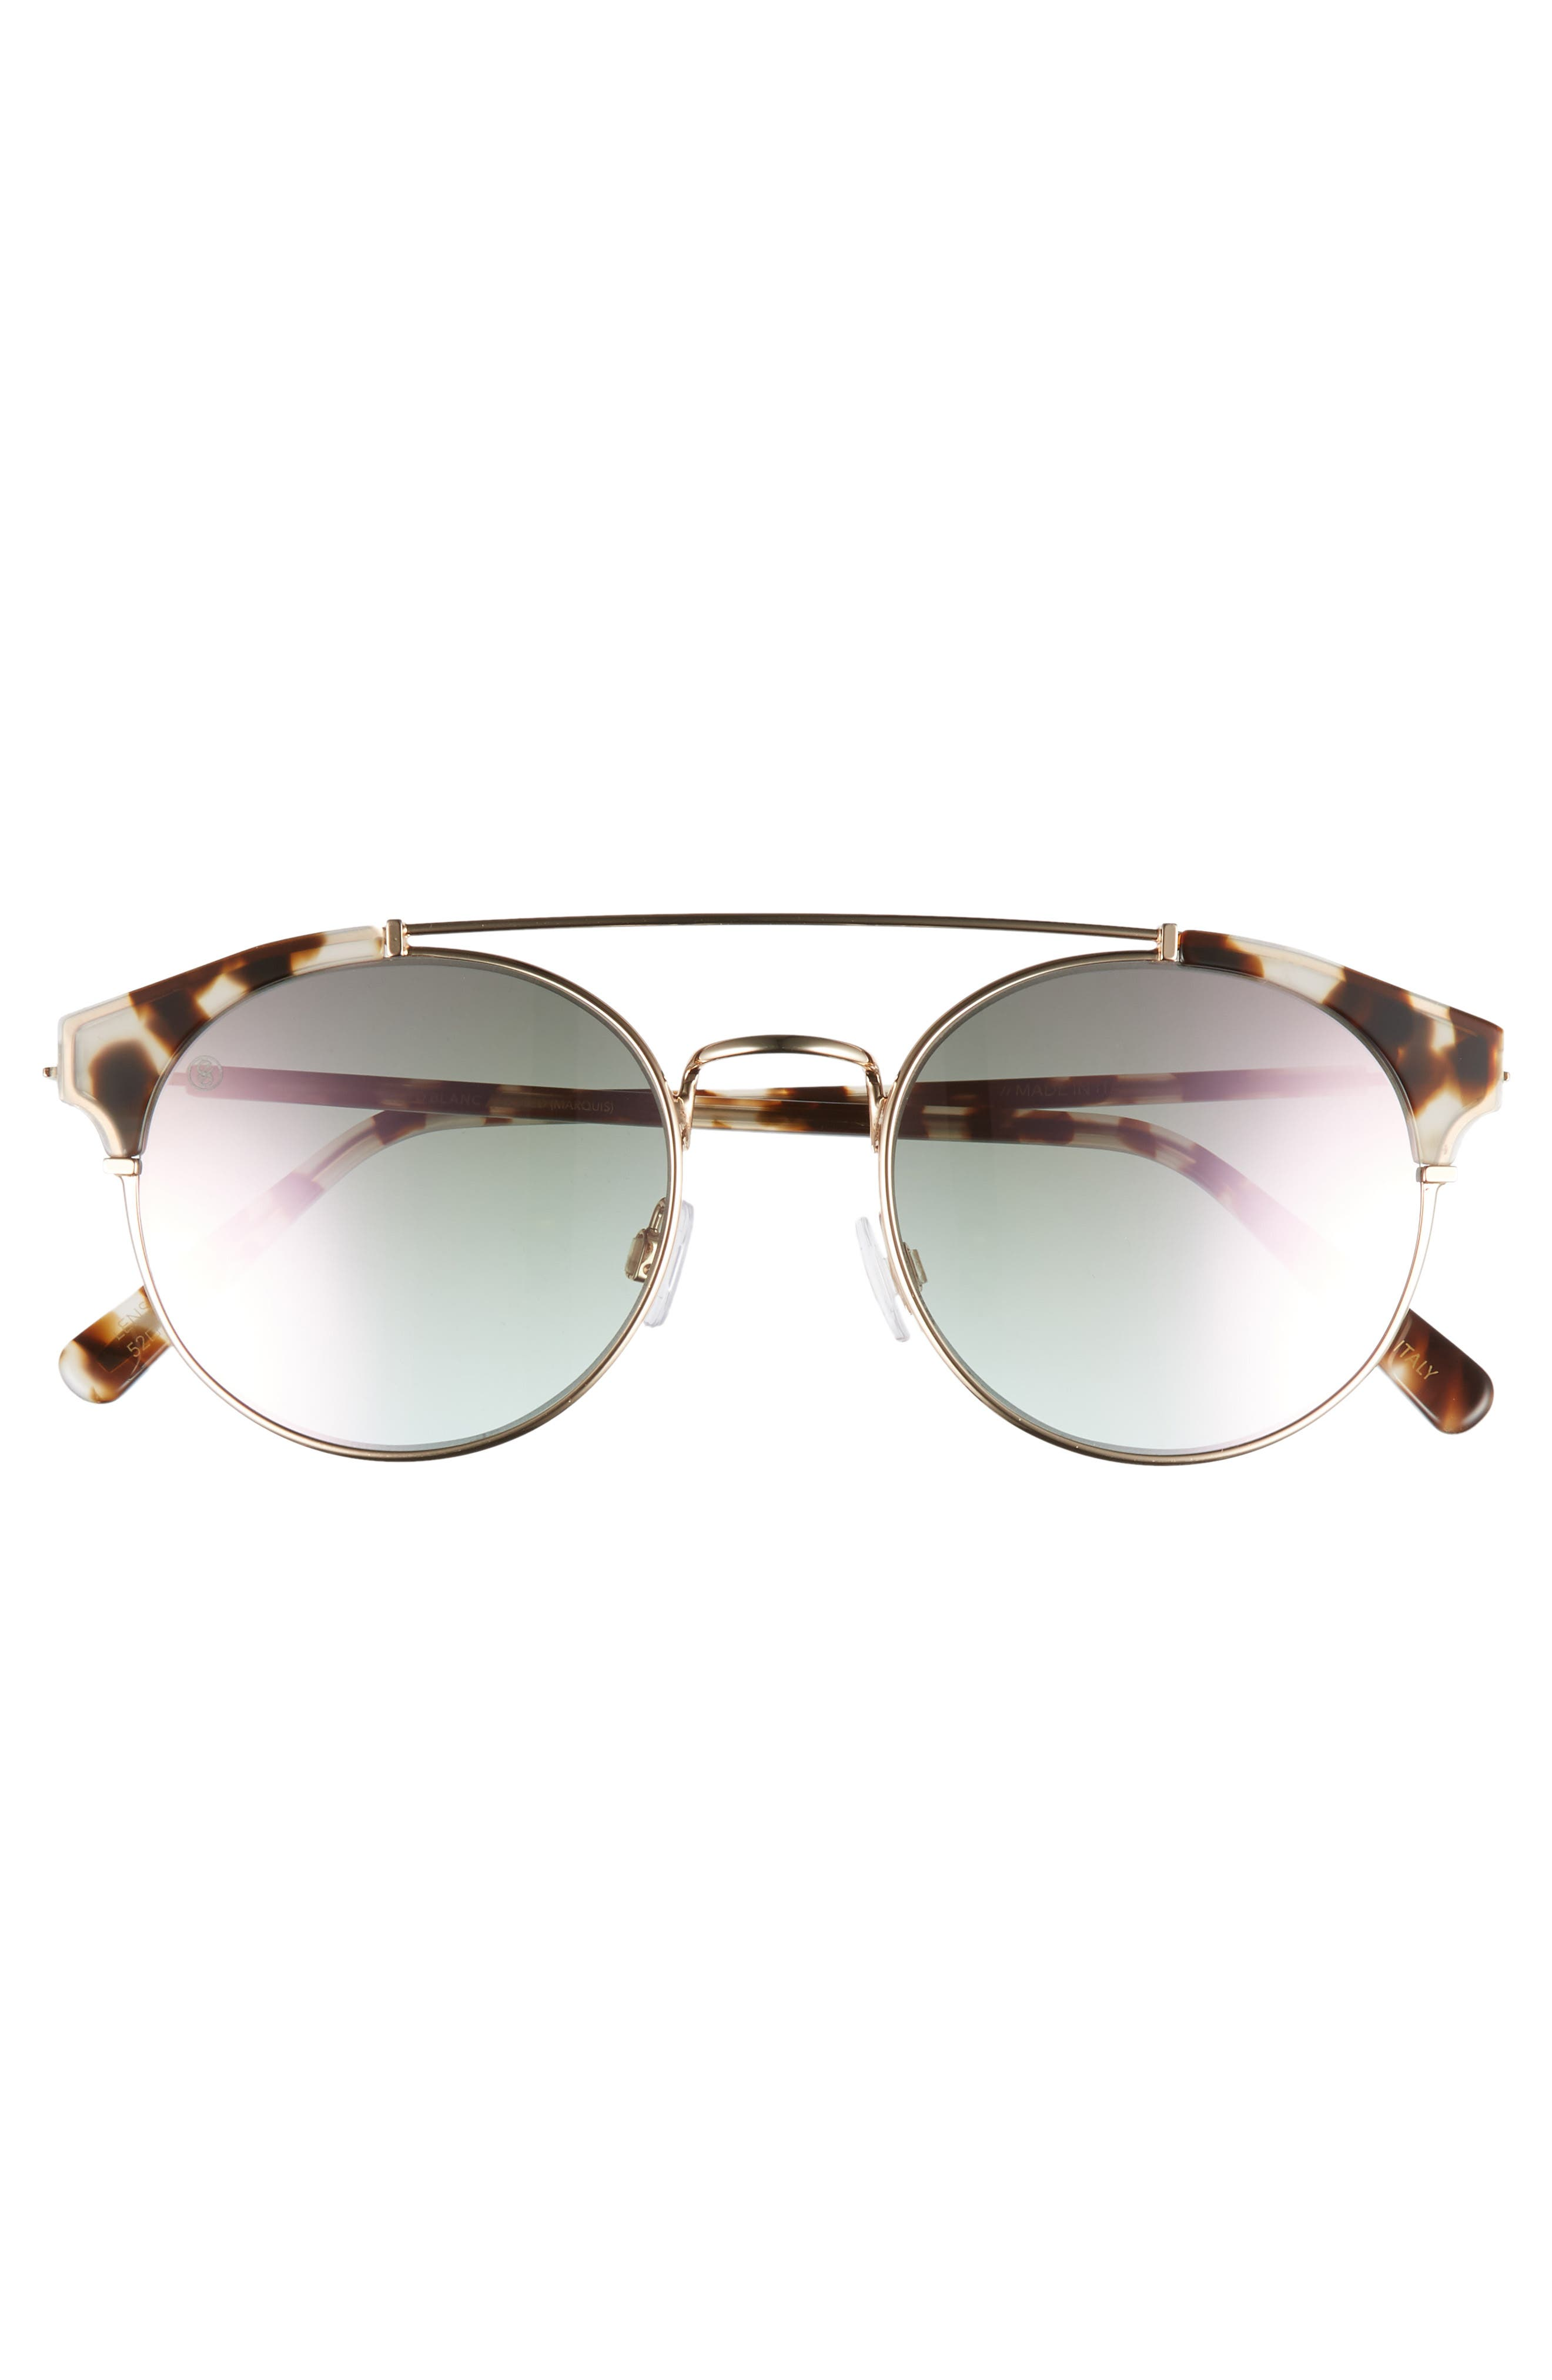 D'BLANC x Amuse Society Dosed Marquis 52mm Gradient Round Aviator Sunglasses,                             Alternate thumbnail 3, color,                             Snow Leopard/ Rose Flash